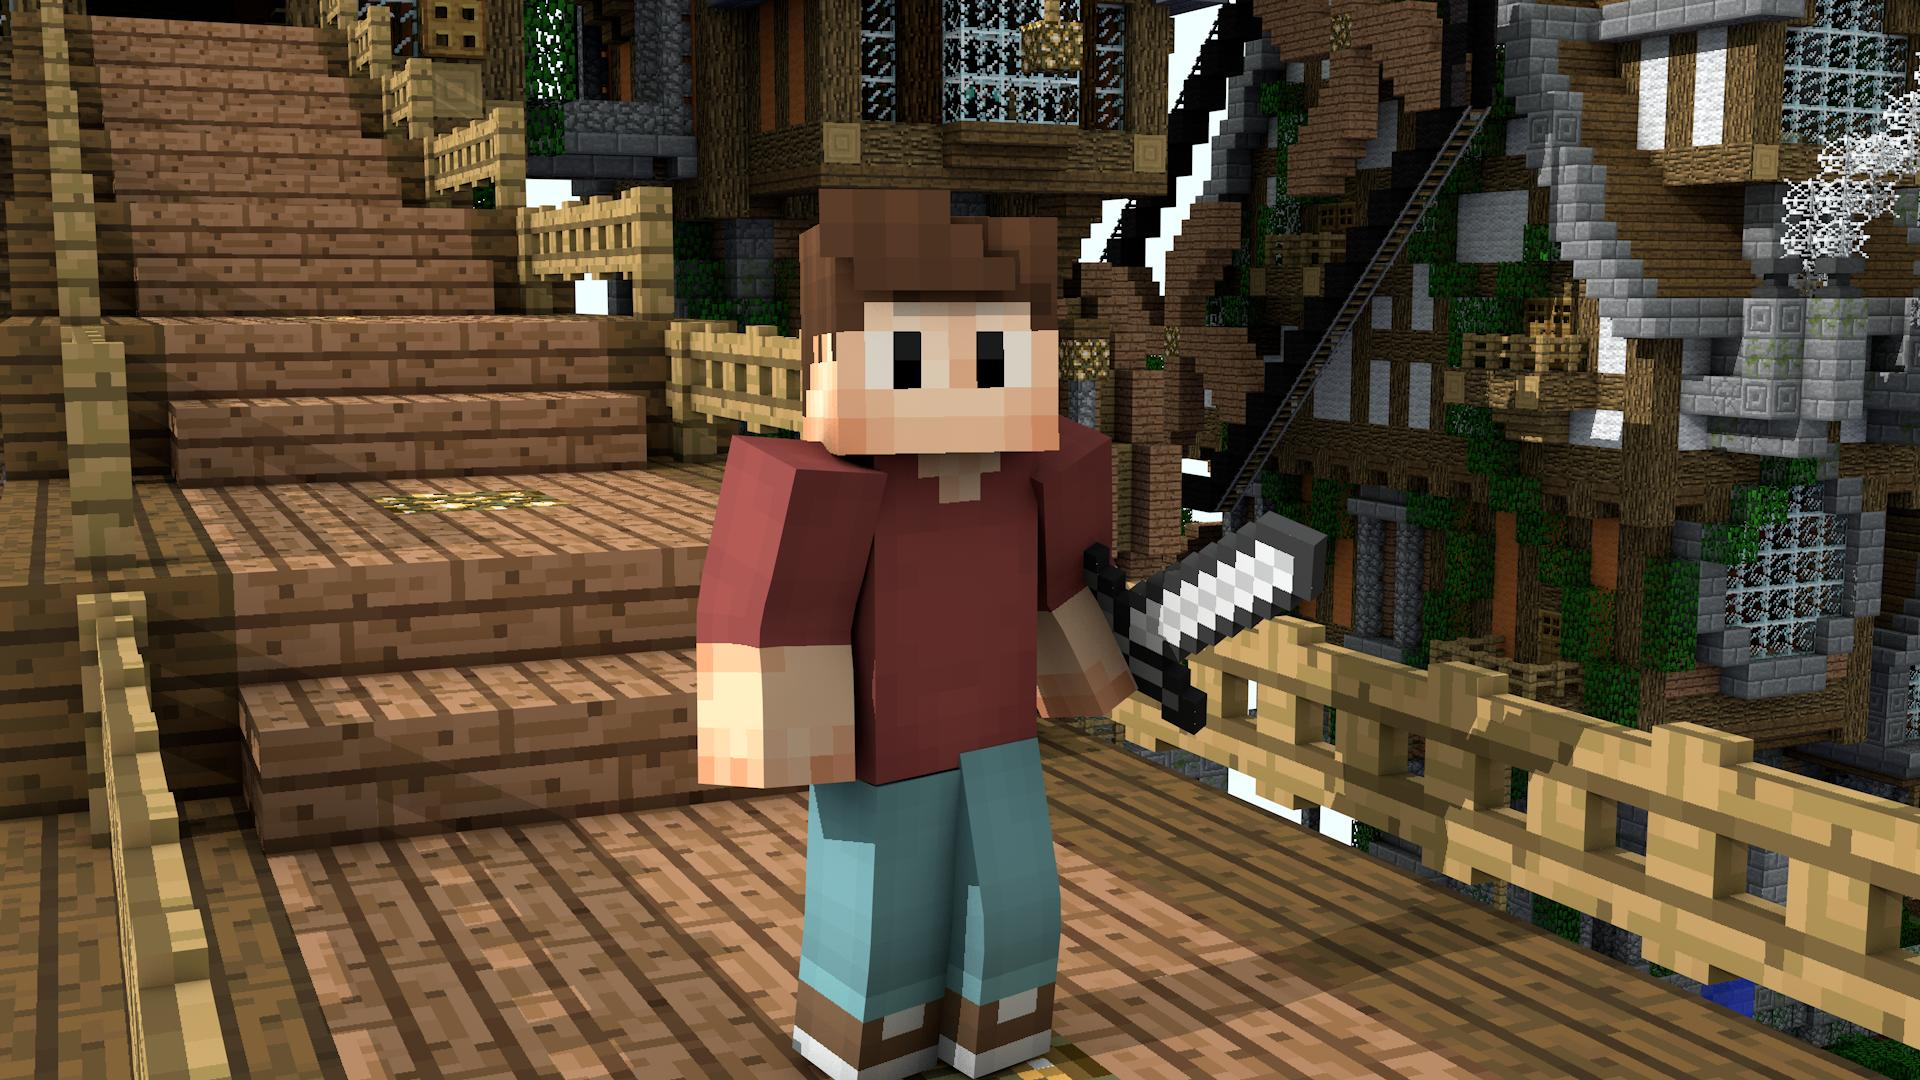 Minecraft Skin Wallpapers High Quality | Download Free